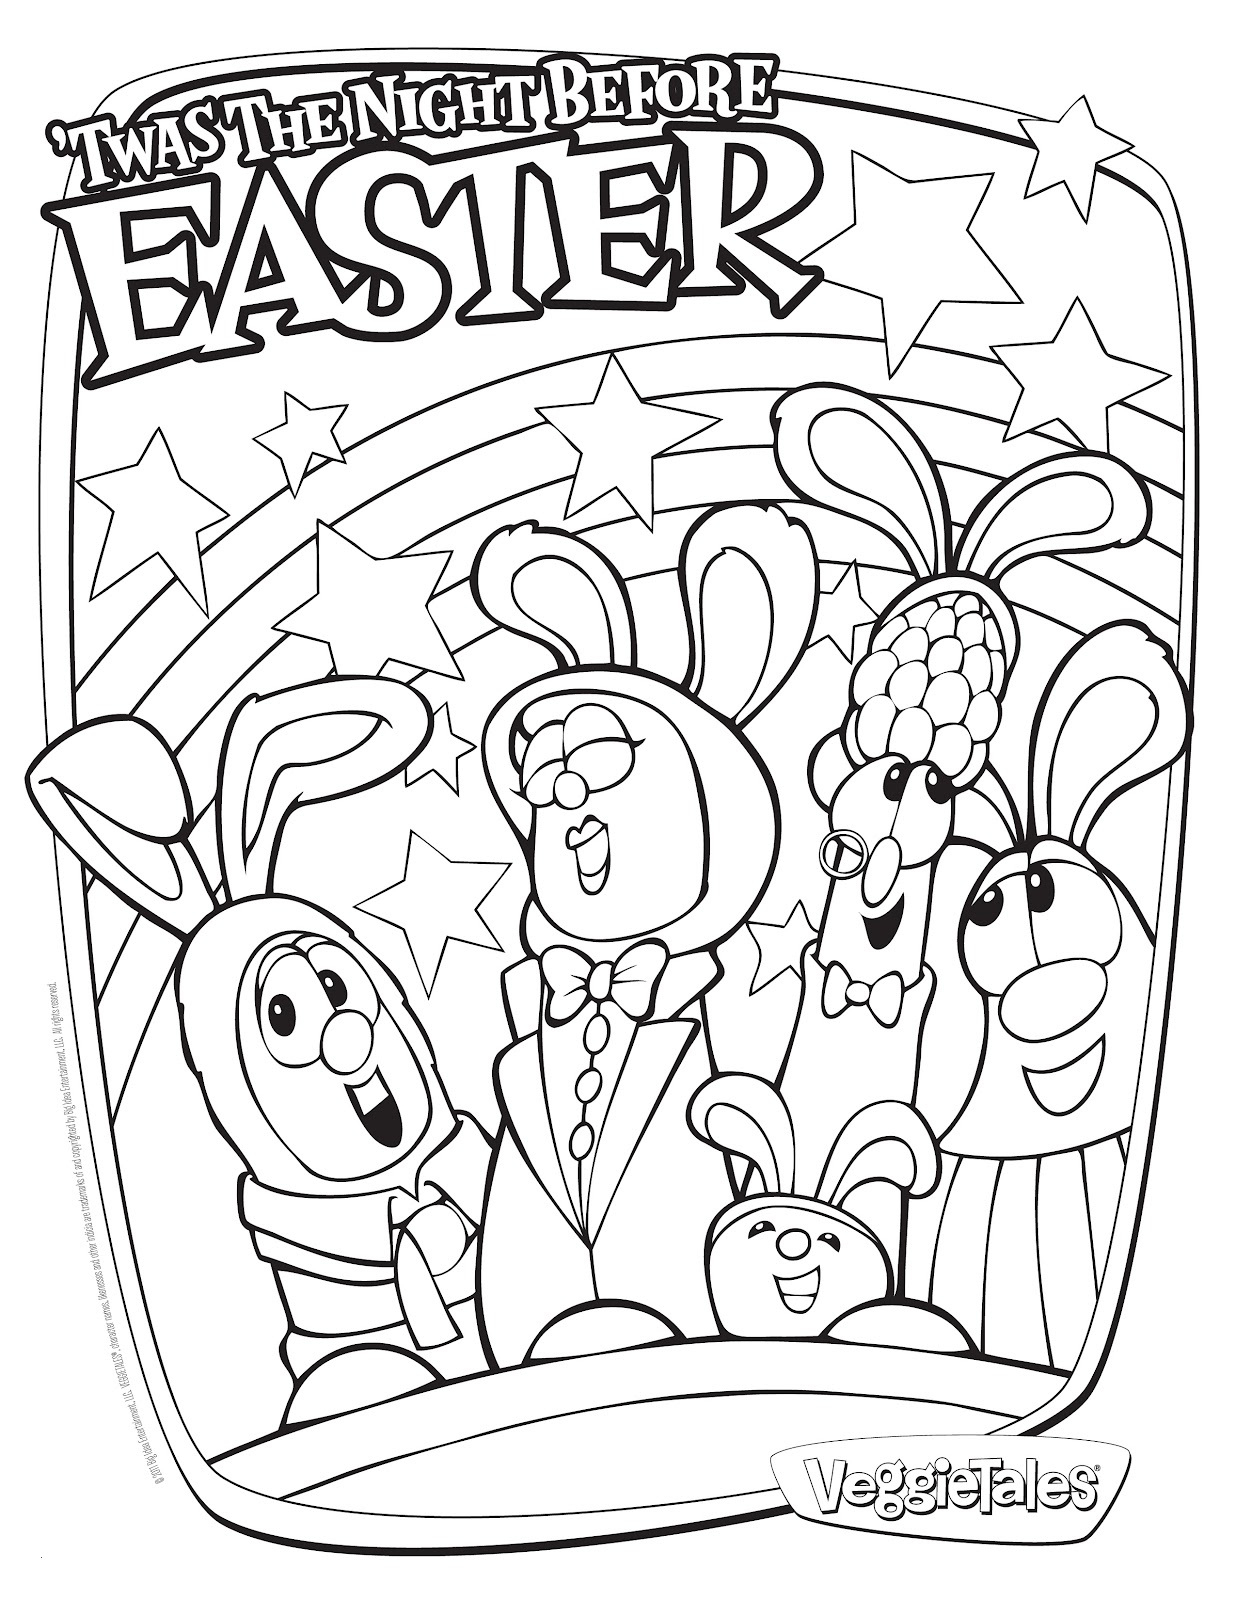 Jesus Loves Children Coloring Pages Download Free Coloring Sheets - Jesus-love-coloring-pages